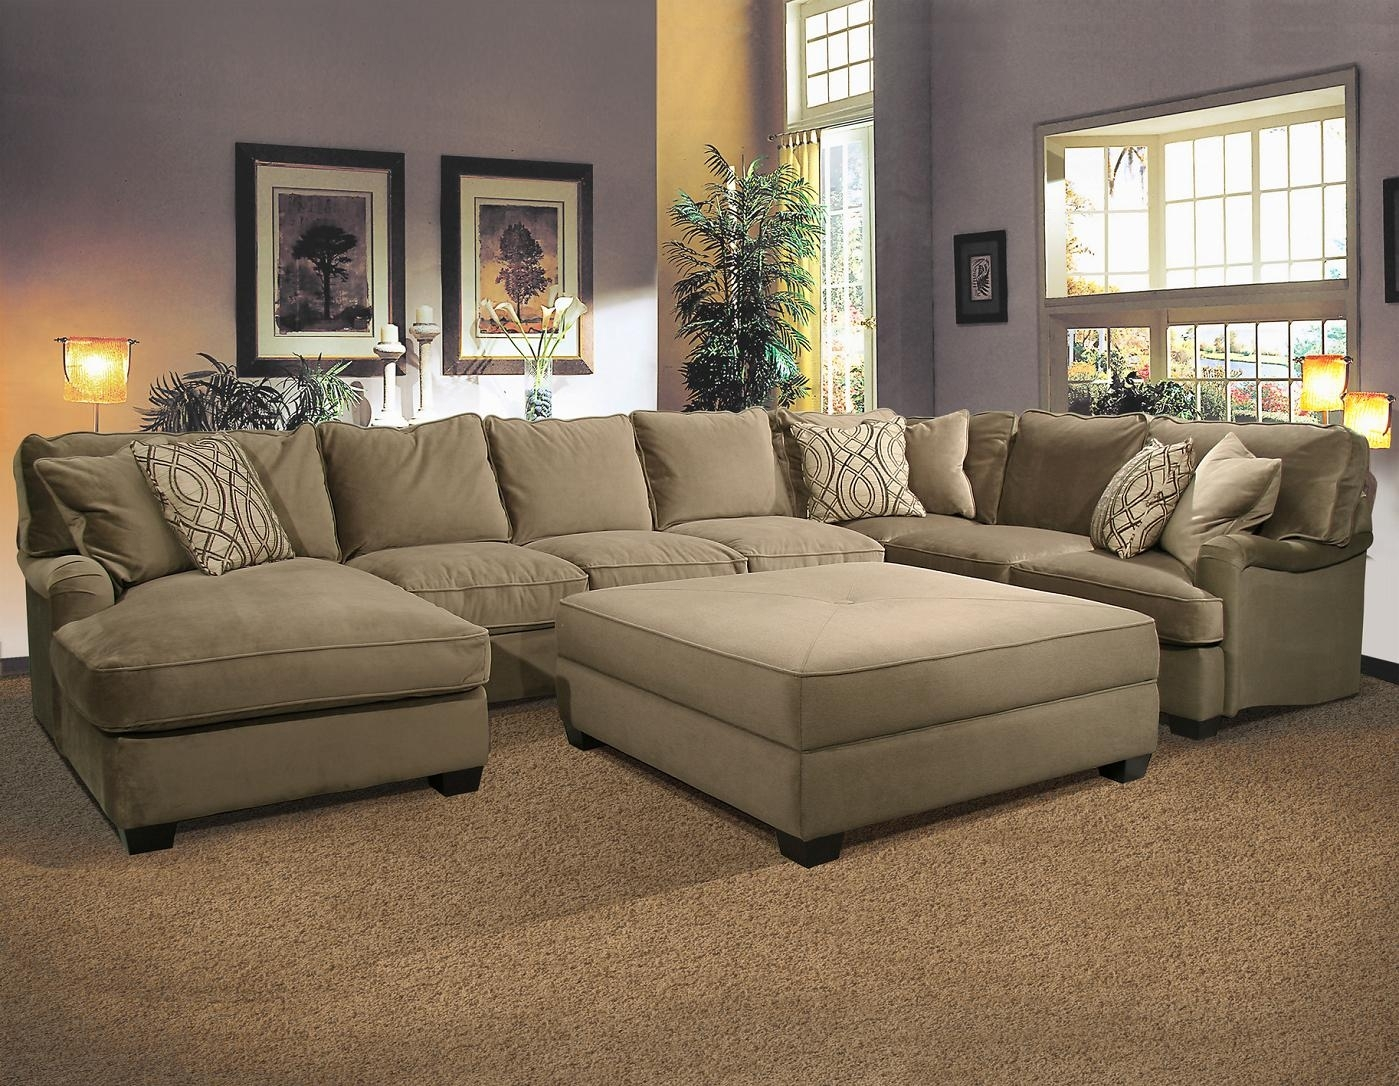 Bostonian Sectional Sofafairmont Seating | Home | Pinterest With Regard To Sofas With Large Ottoman (View 9 of 10)